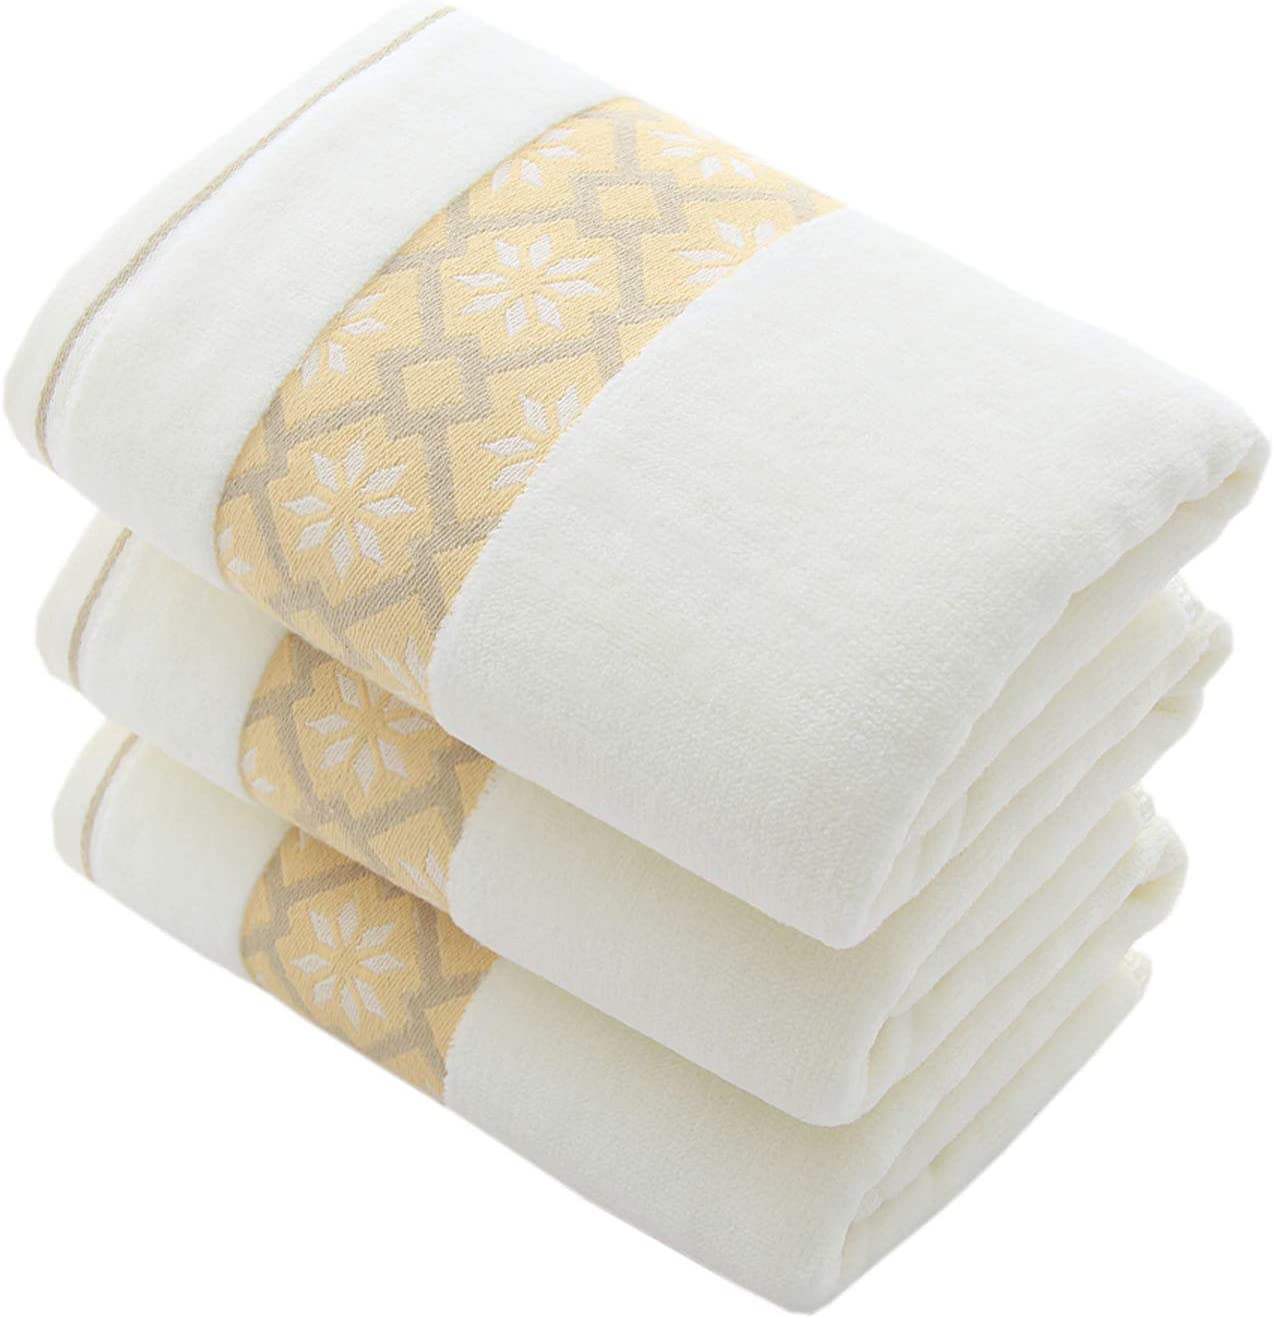 Hand Towels Set of 3 Diamond Pattern 100% Cotton Super Soft Highly Absorbent Hand Towels for Bathroom 14 x 29 Inch (Yellow)